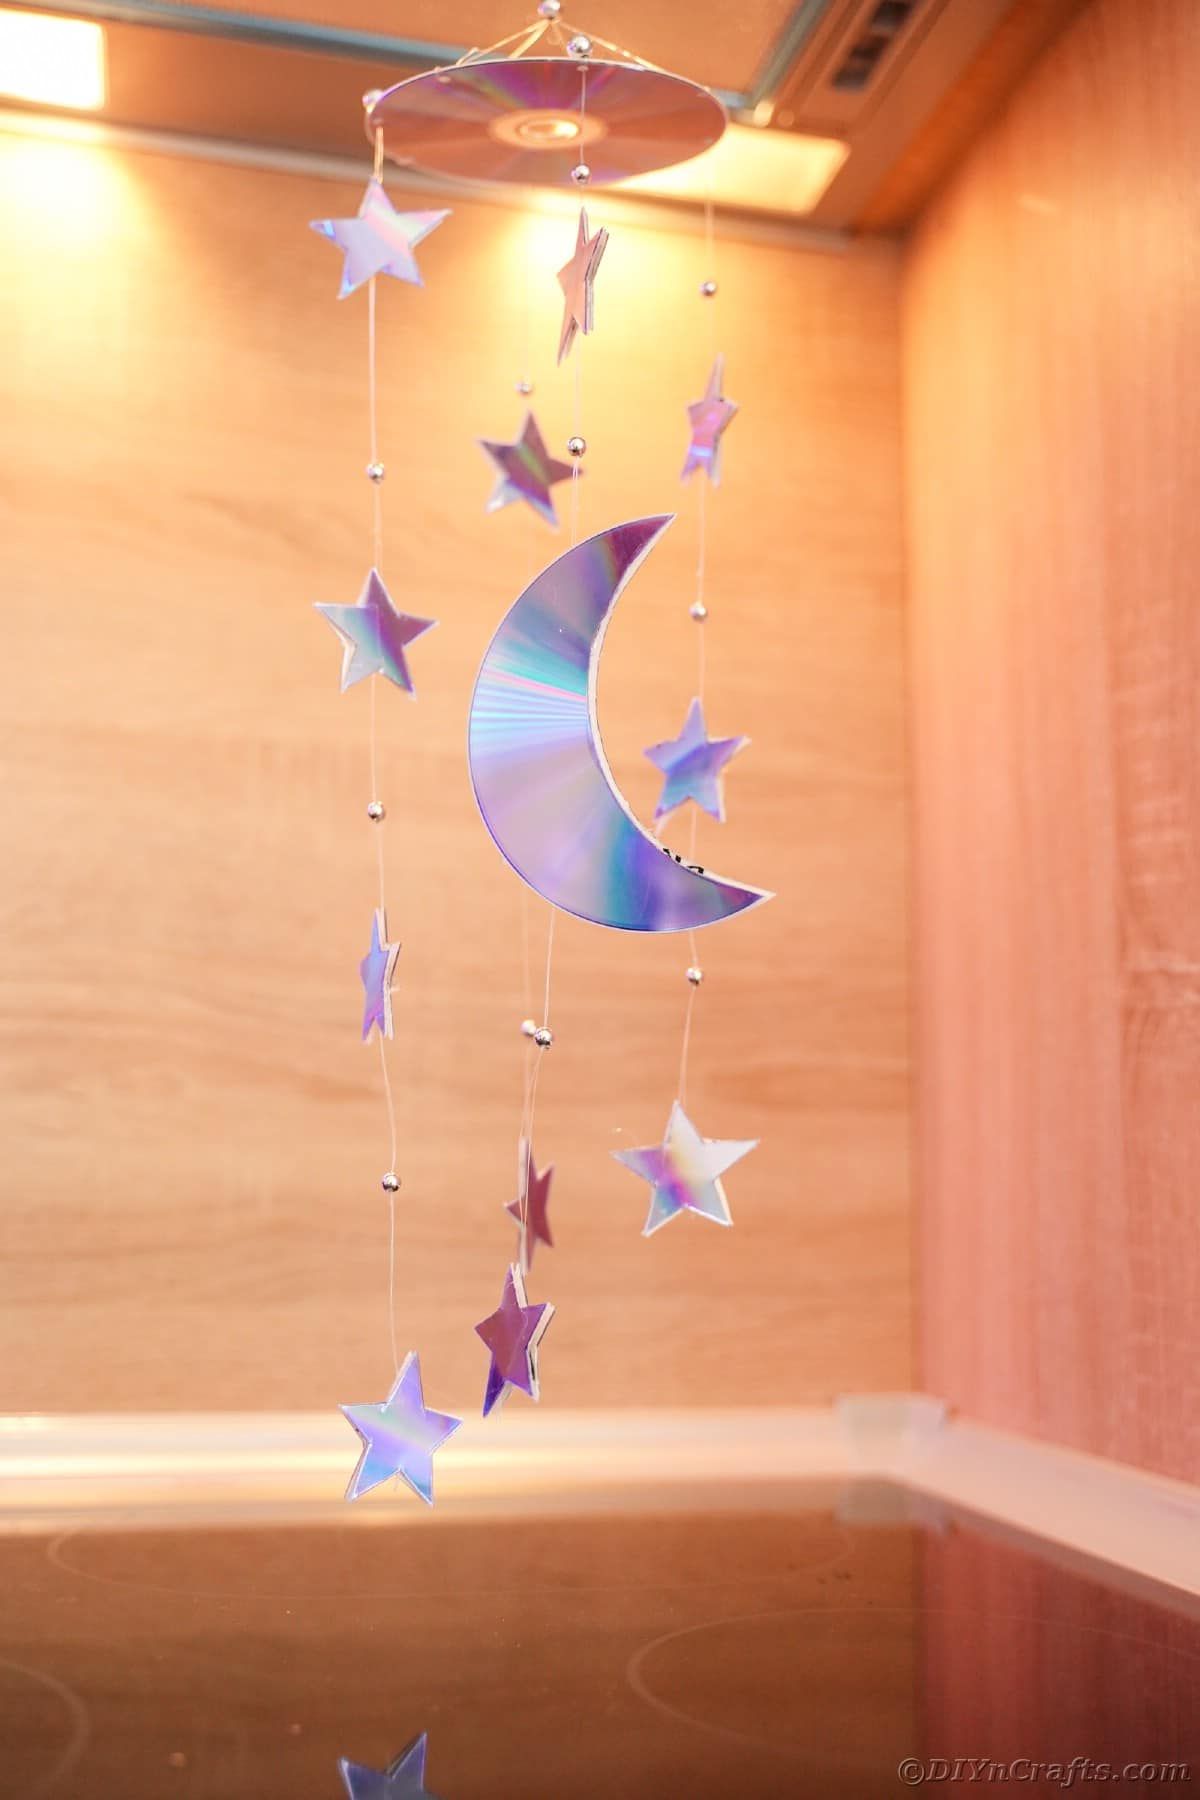 Mobile hung from ceiling in front of wooden walls